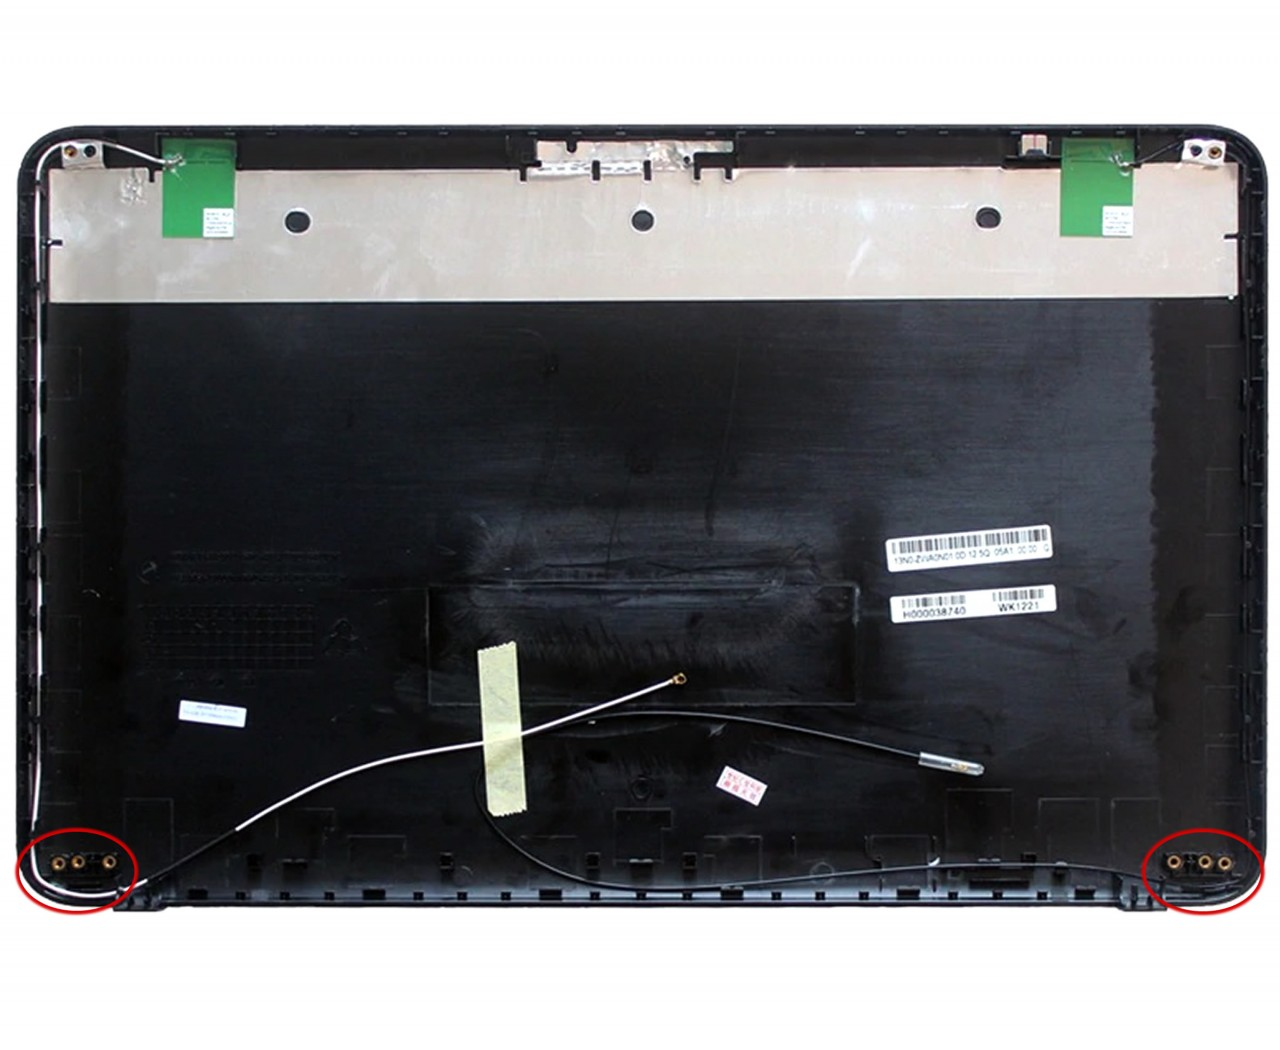 Capac Display BackCover Toshiba Satellite S850 Carcasa Display Neagra cu 3 Suruburi Balamale imagine powerlaptop.ro 2021